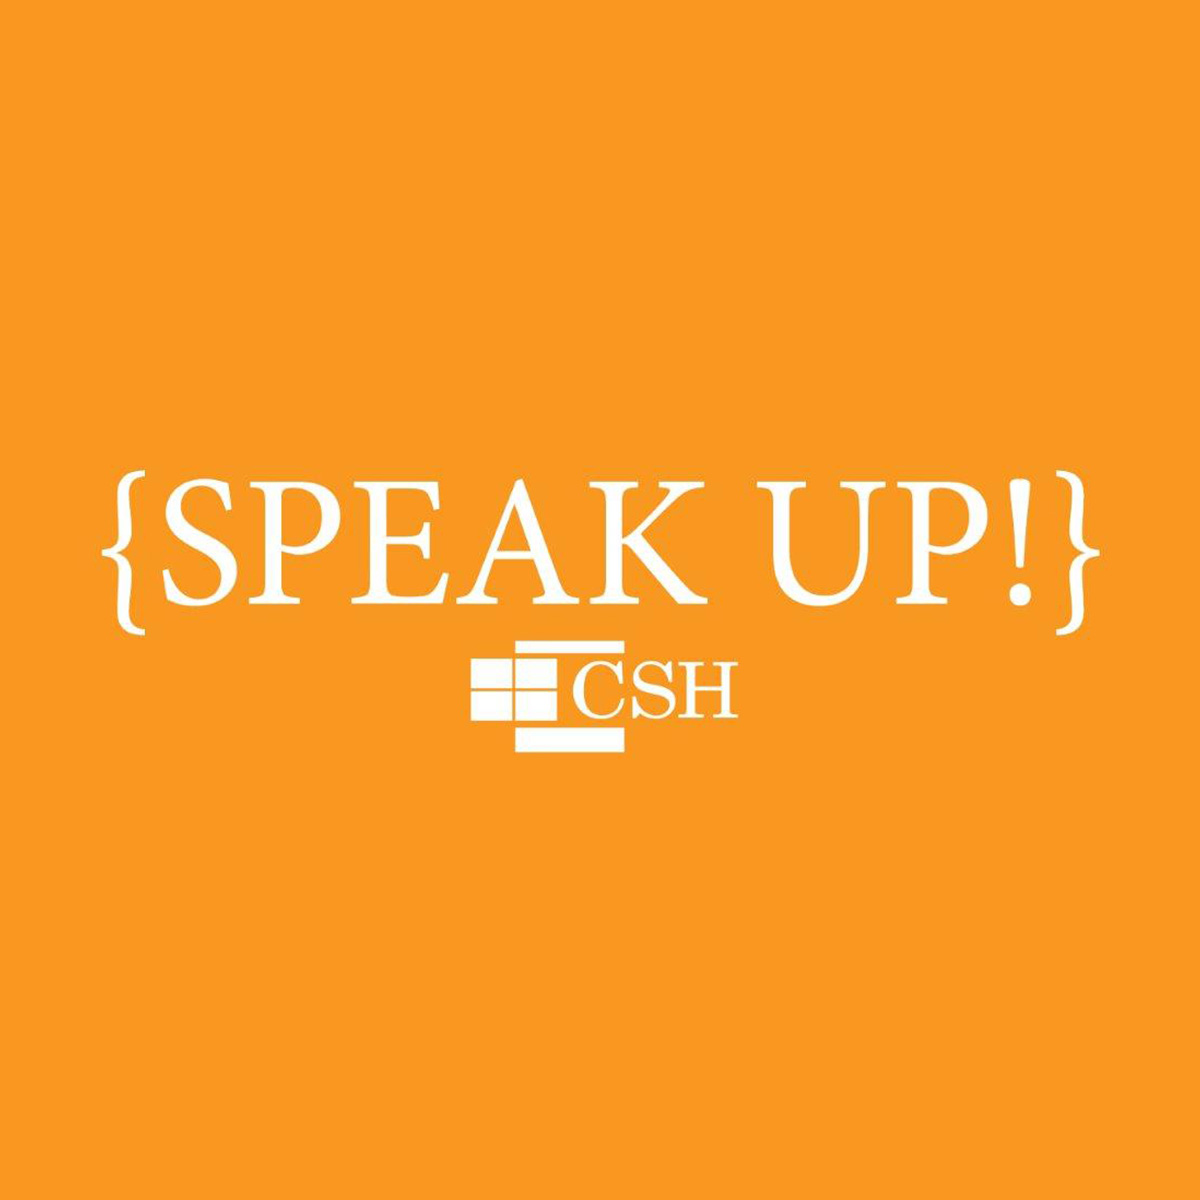 Speak Up 400x400.jpg